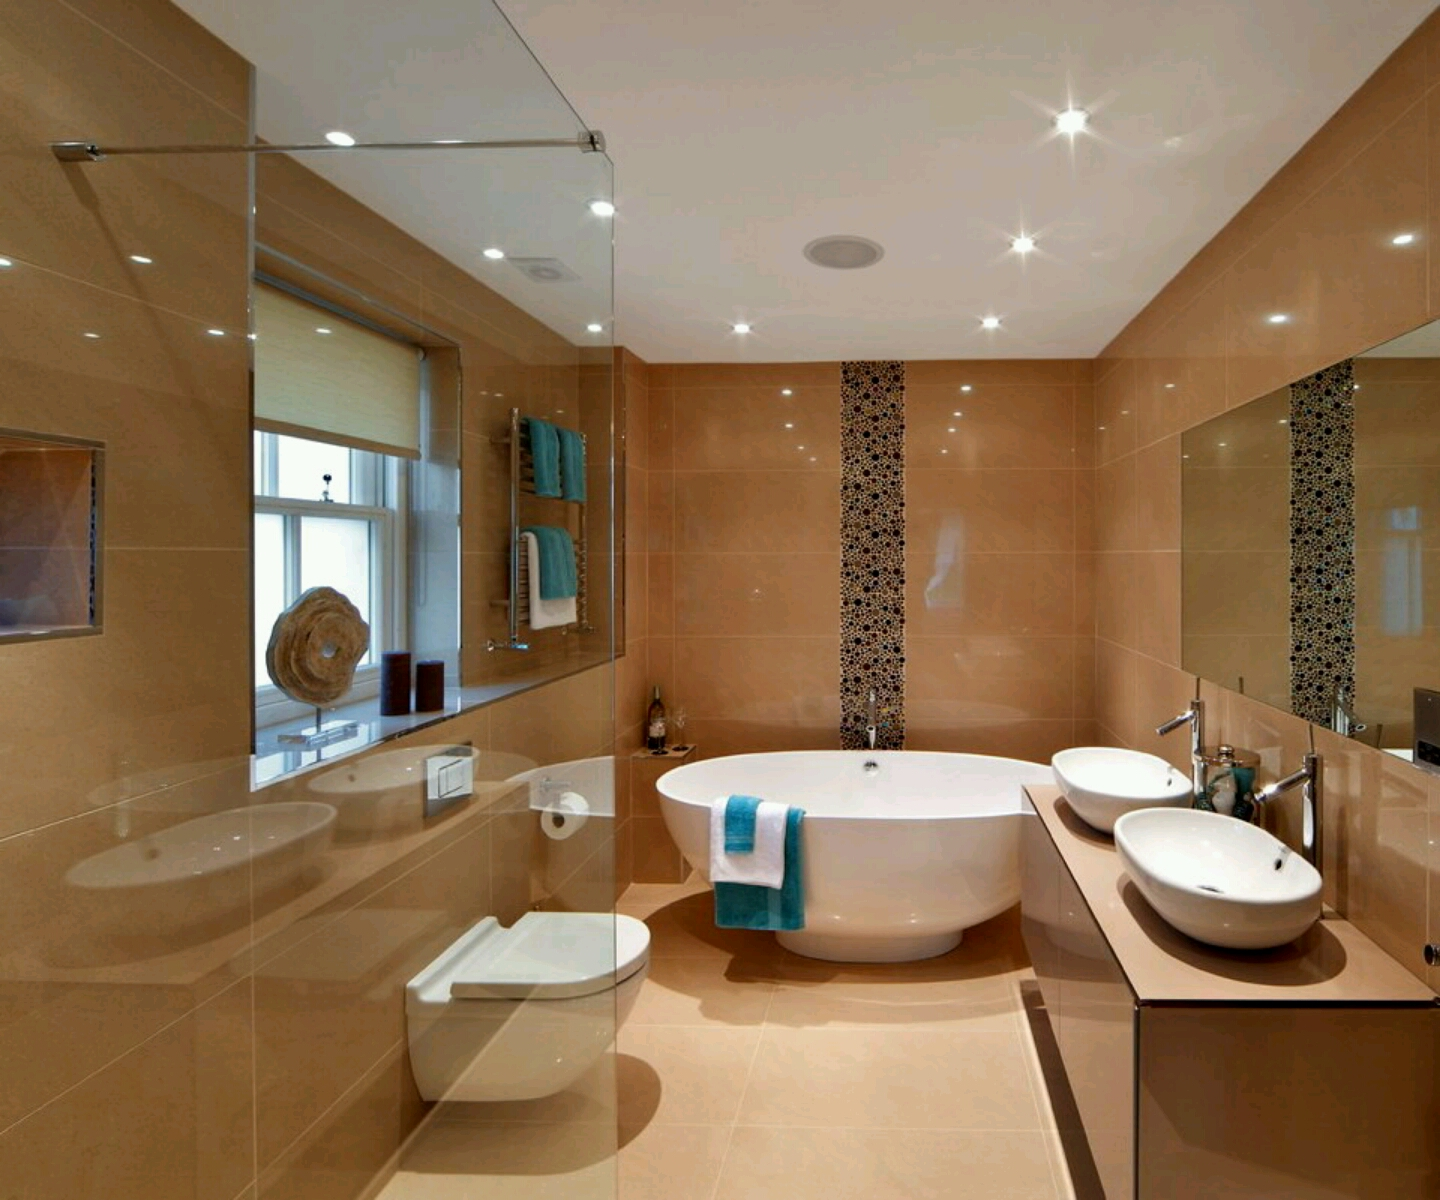 Luxury modern bathrooms designs decoration ideas new for Luxury bathroom ideas uk